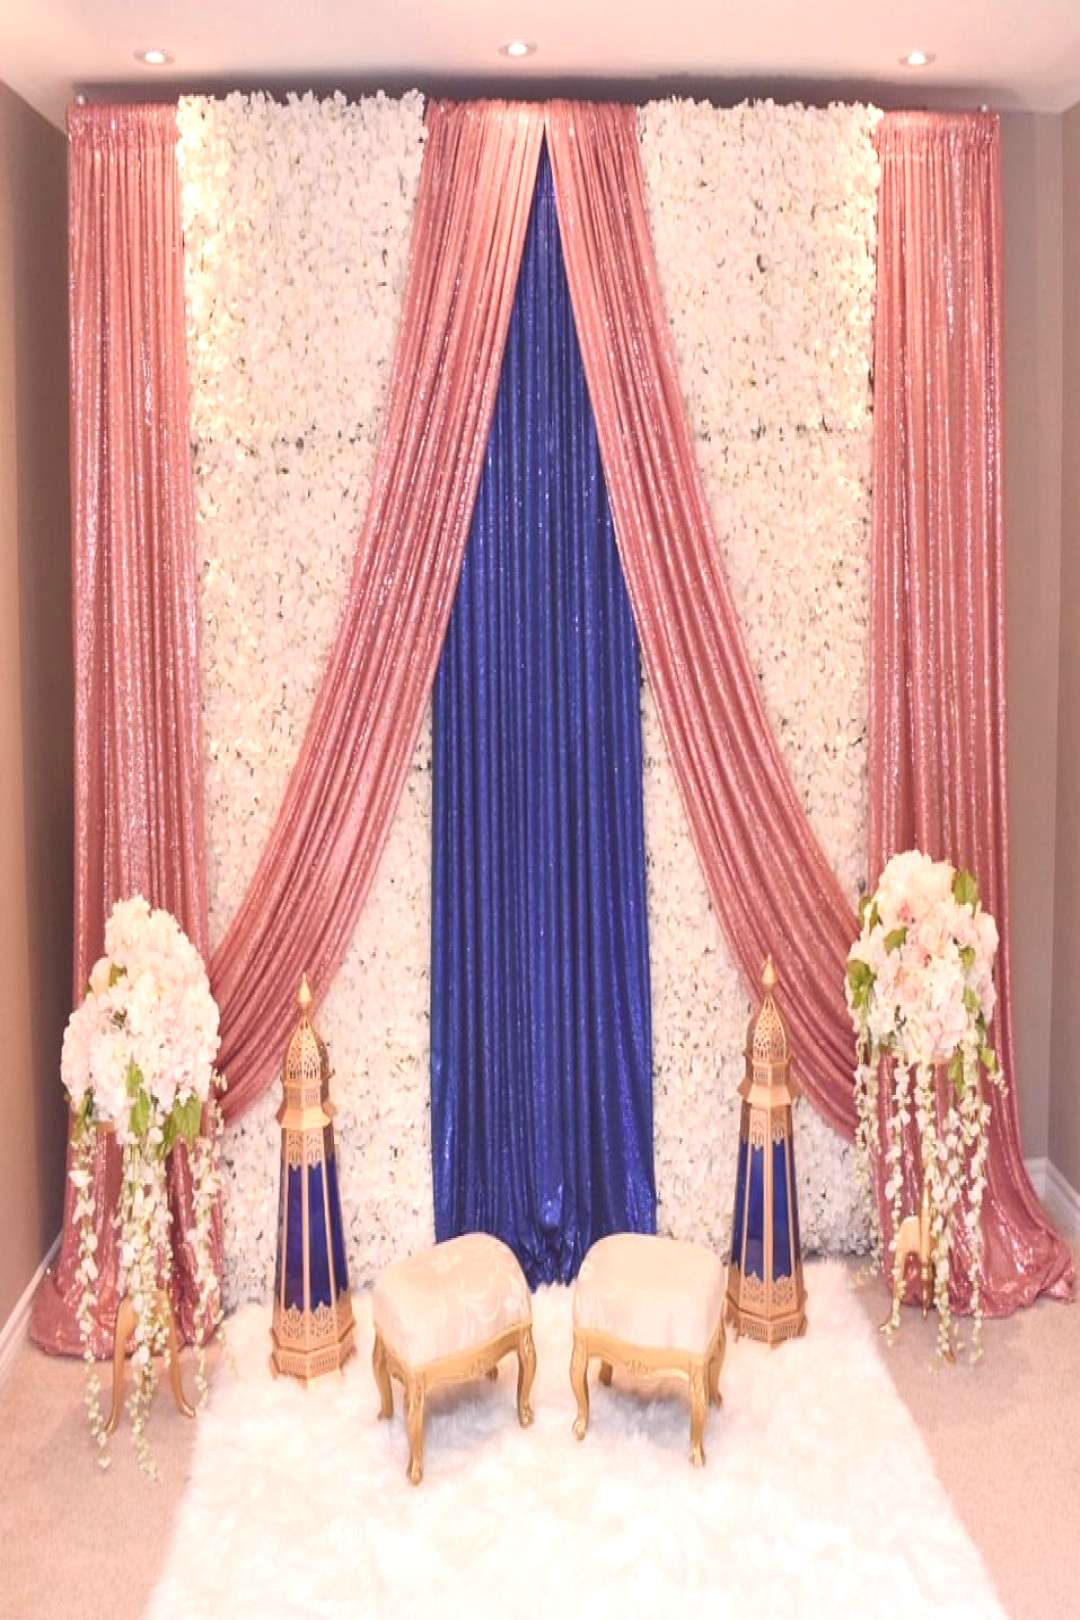 Sometimes simplicity is the most elegant. . . . Backdrop & Decor